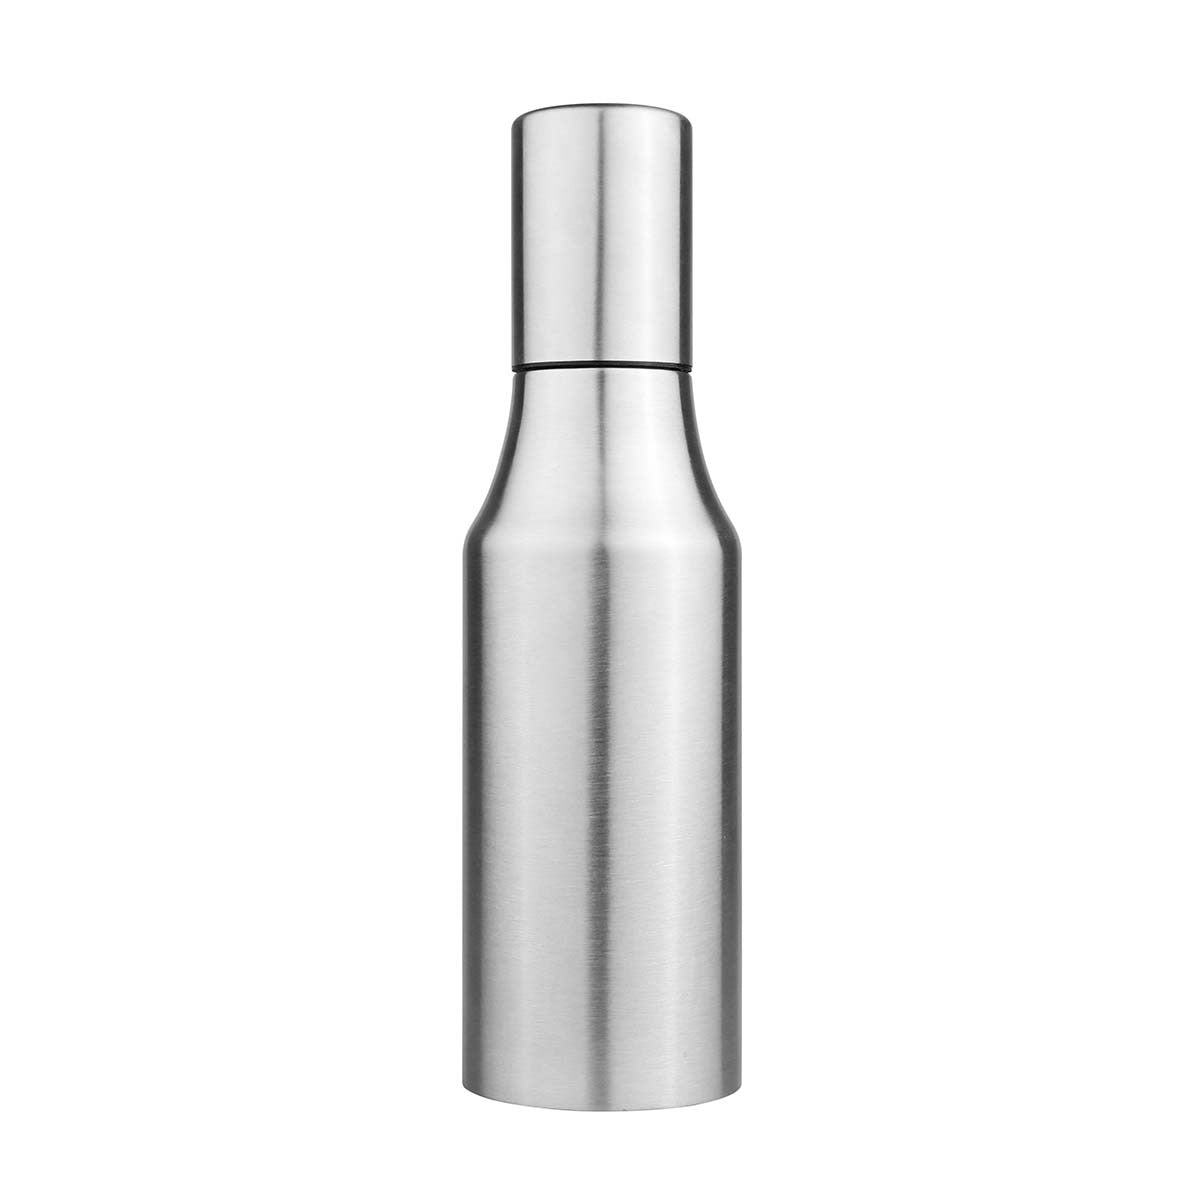 Stainless Steel Dispenser (750ml/26oz)